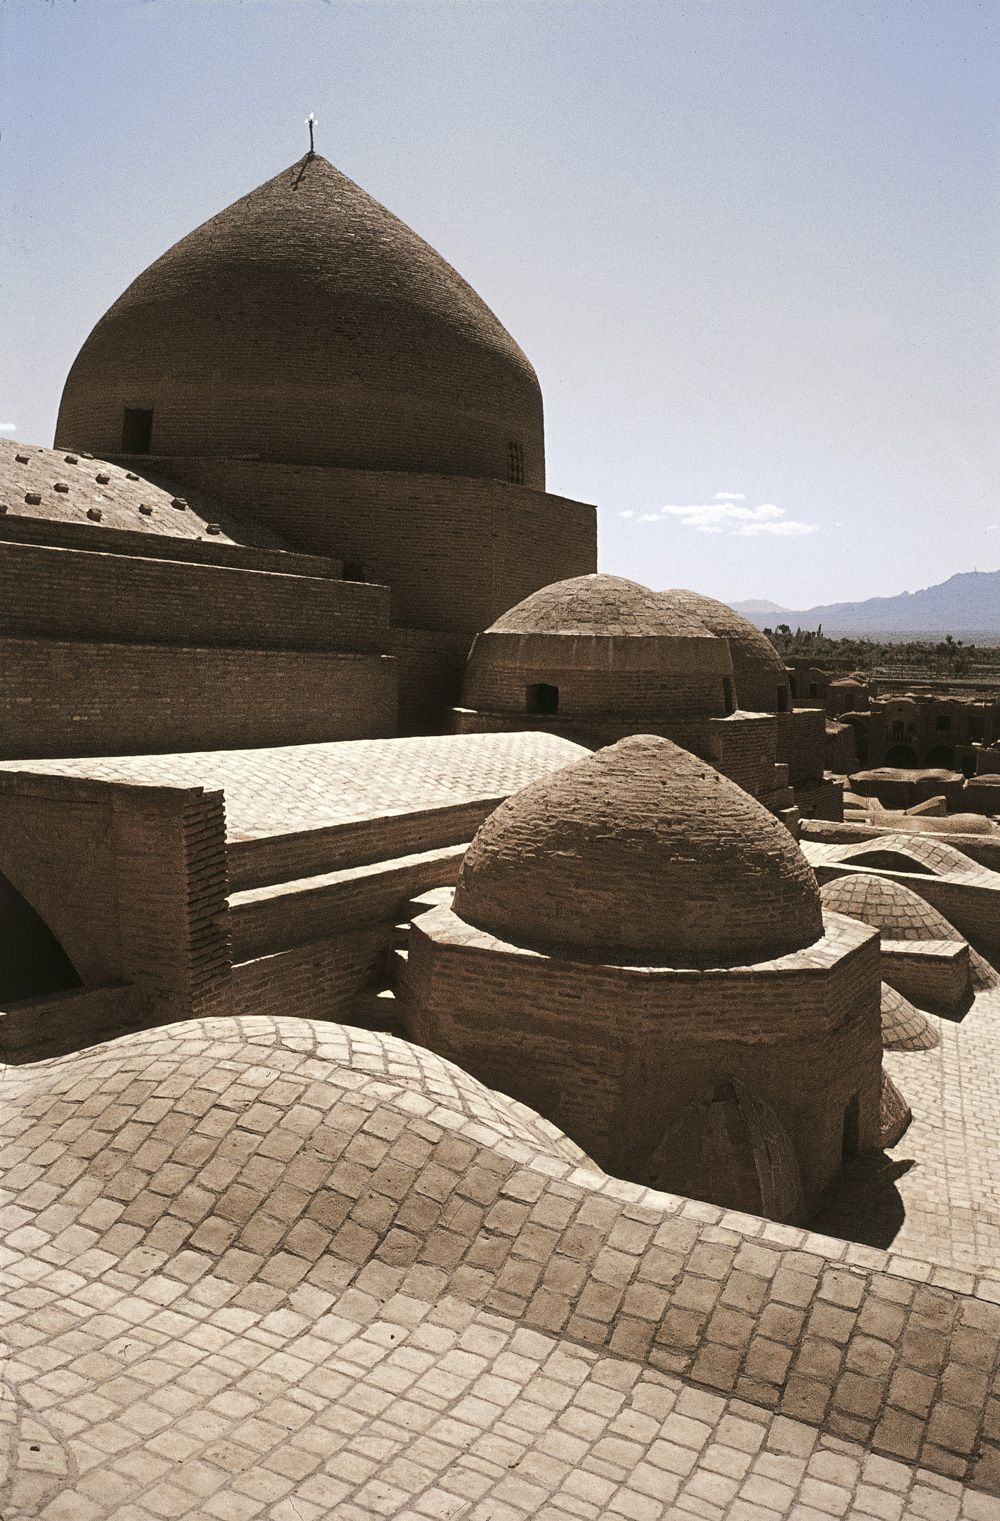 Friday Mosque, Ardestan, Iran (11th century)